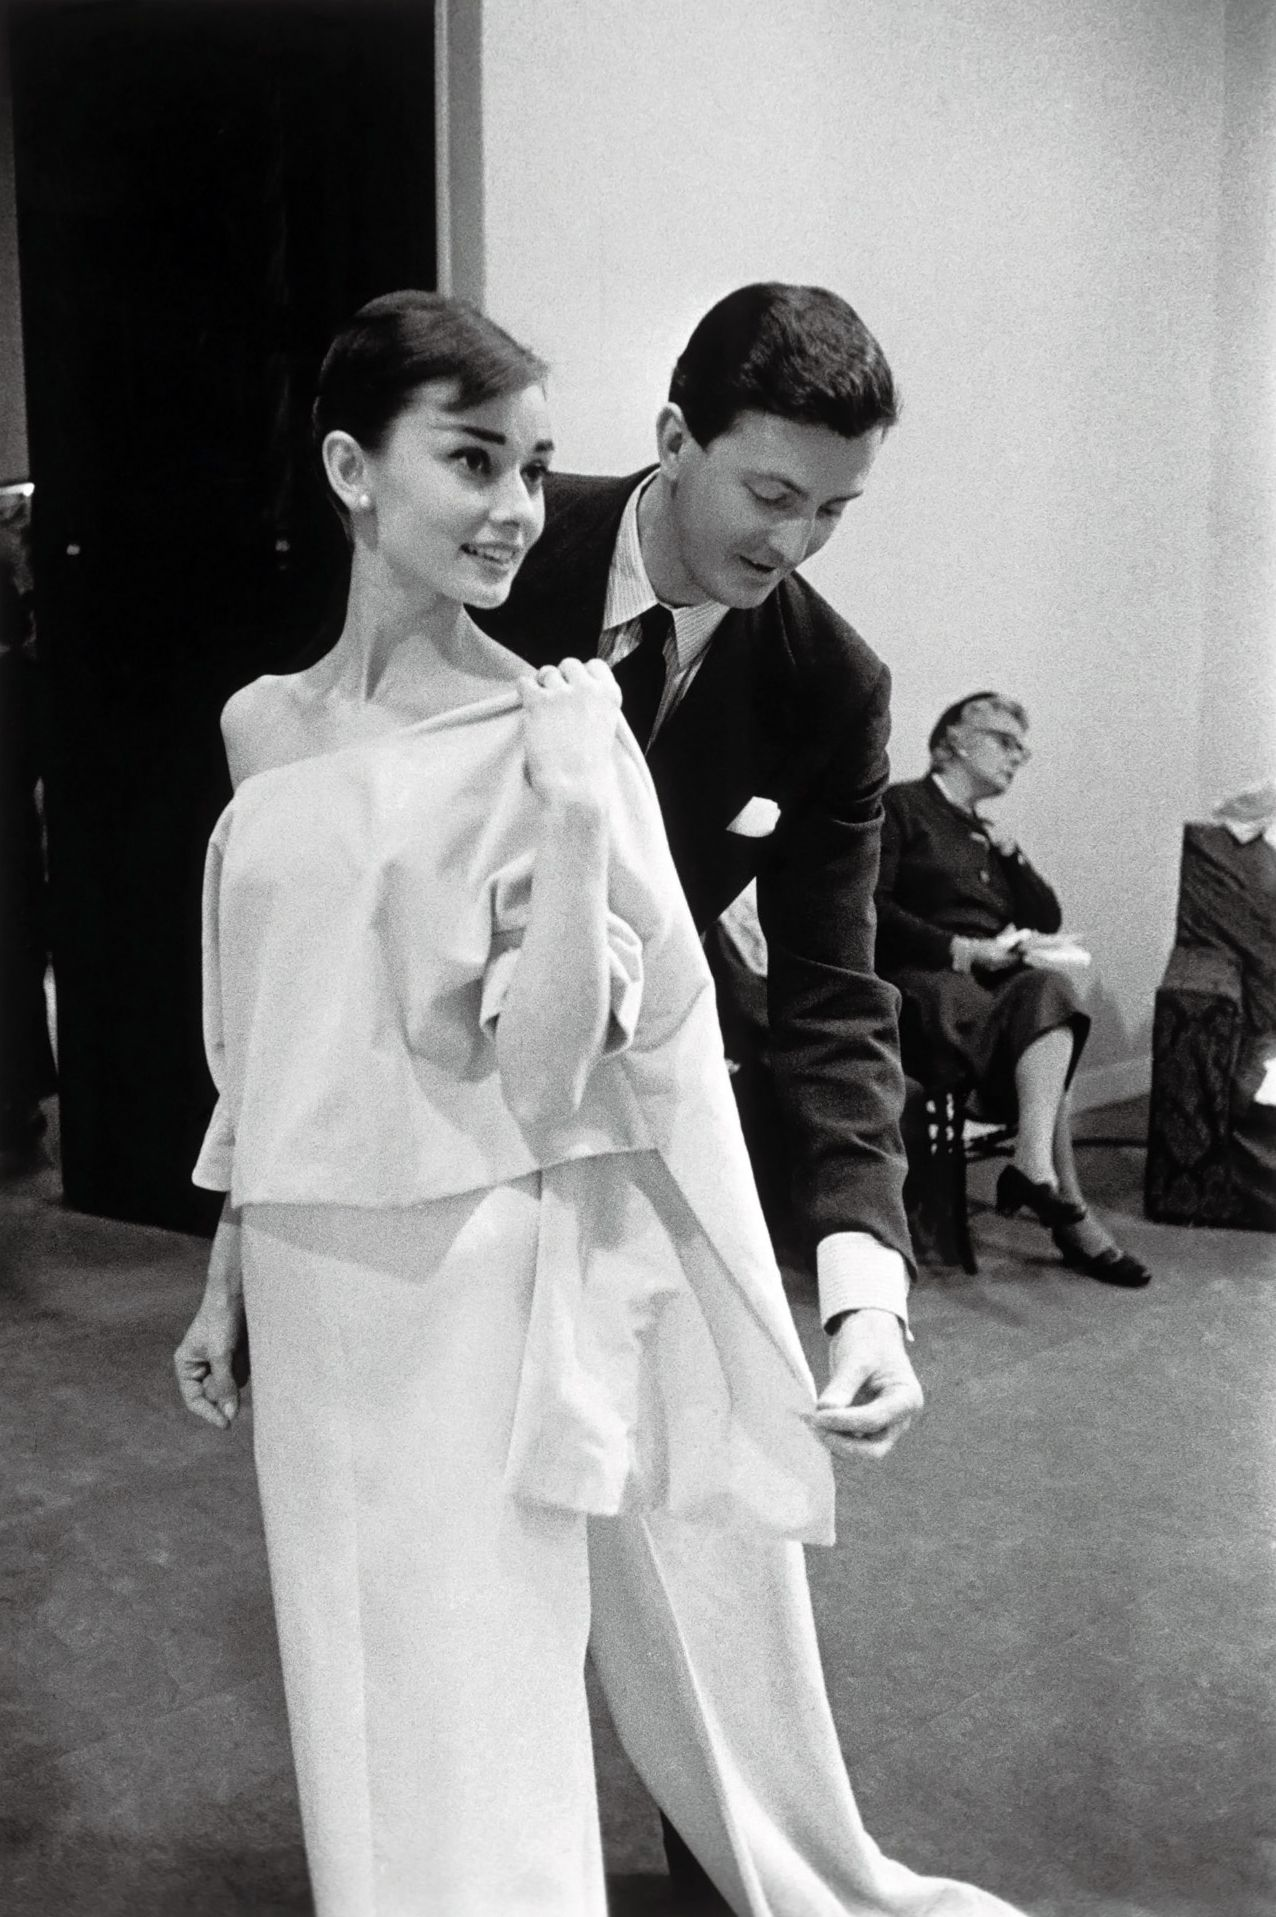 Hubert de Givenchy styling a model on Audrey Hepburn, his muse.